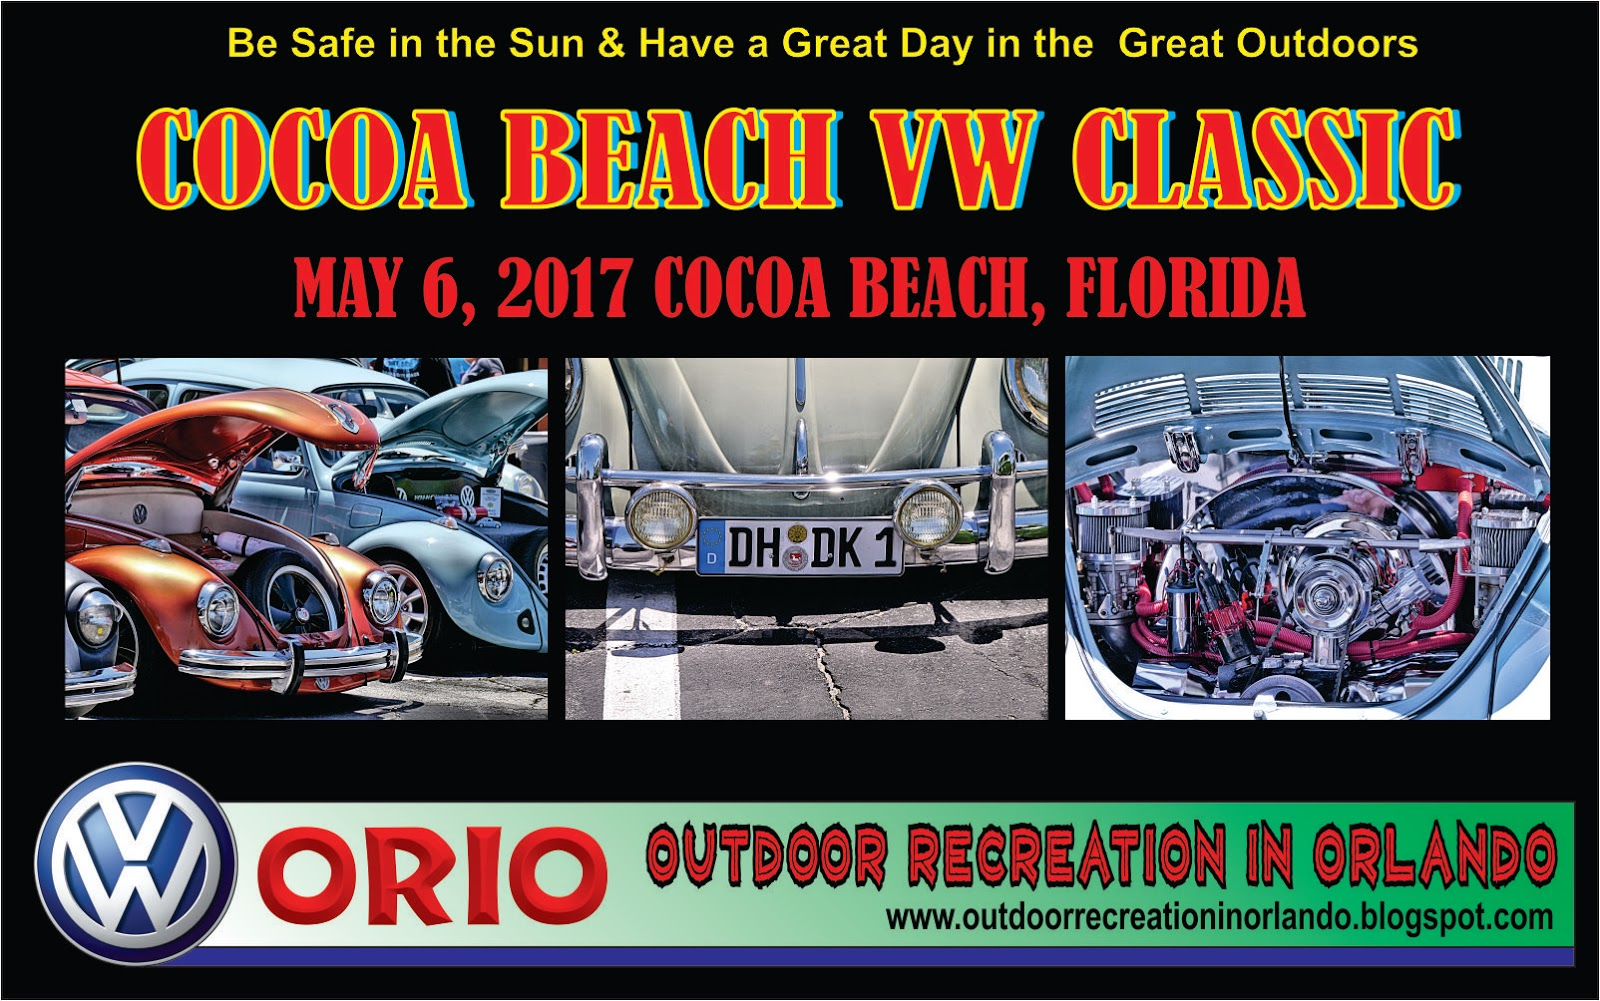 Outdoor Recreation In Orlando Cocoa Beach VW Classic Car Show - Car show orlando classic weekend